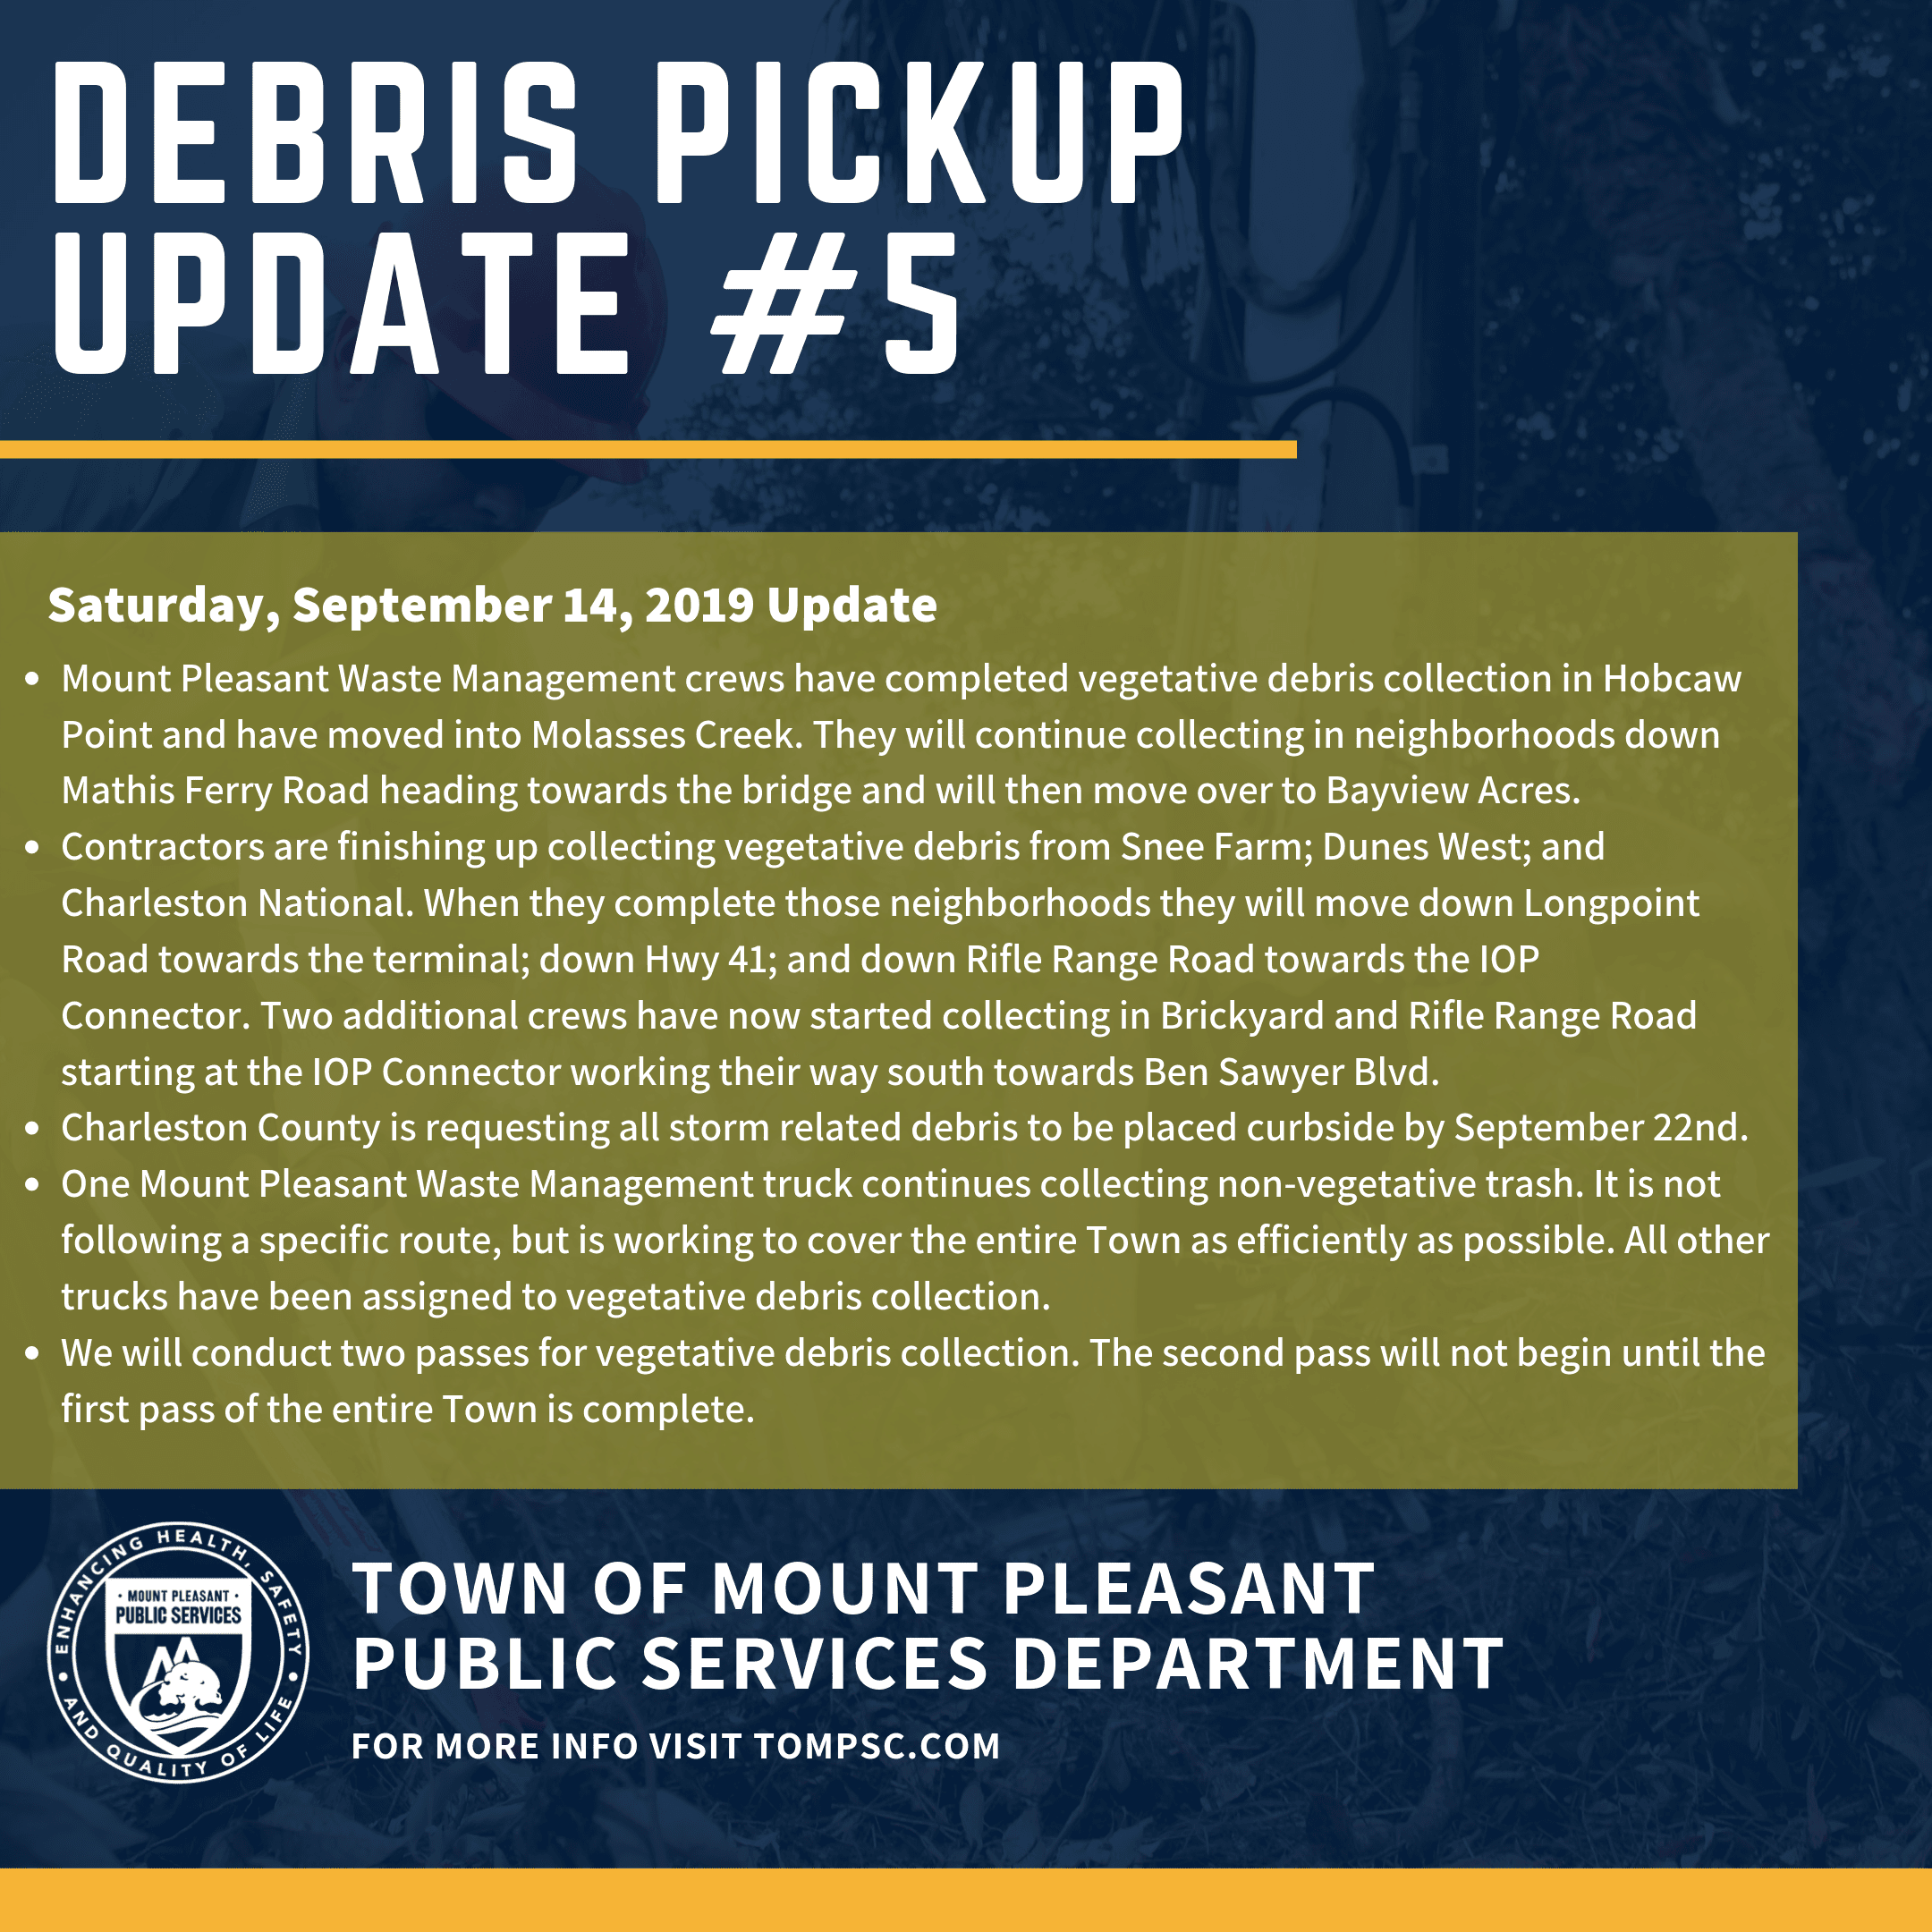 Copy of Debris Pickup Update 3